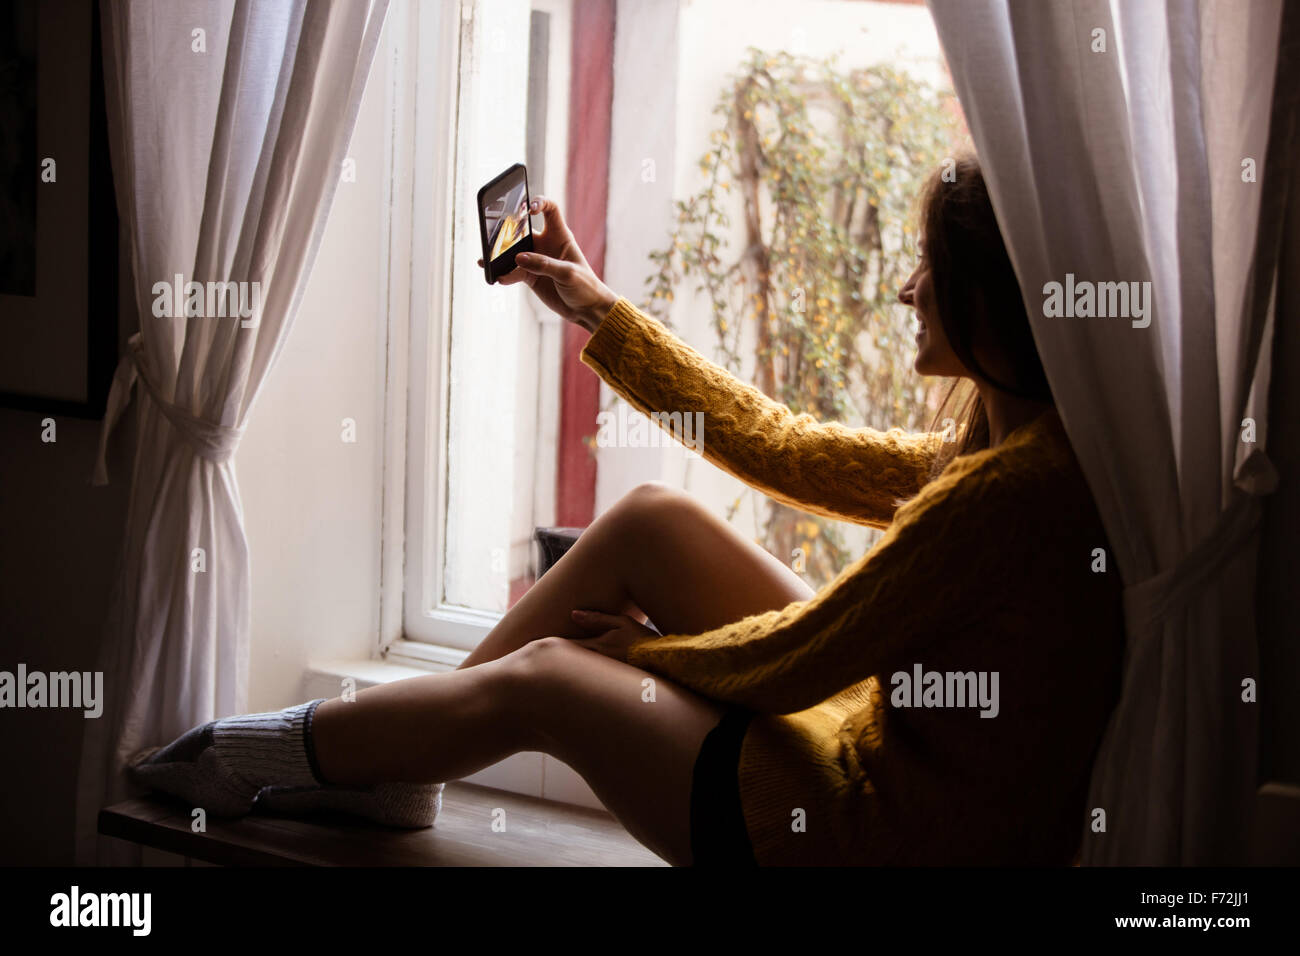 Young woman taking a selfie near the window Stock Photo